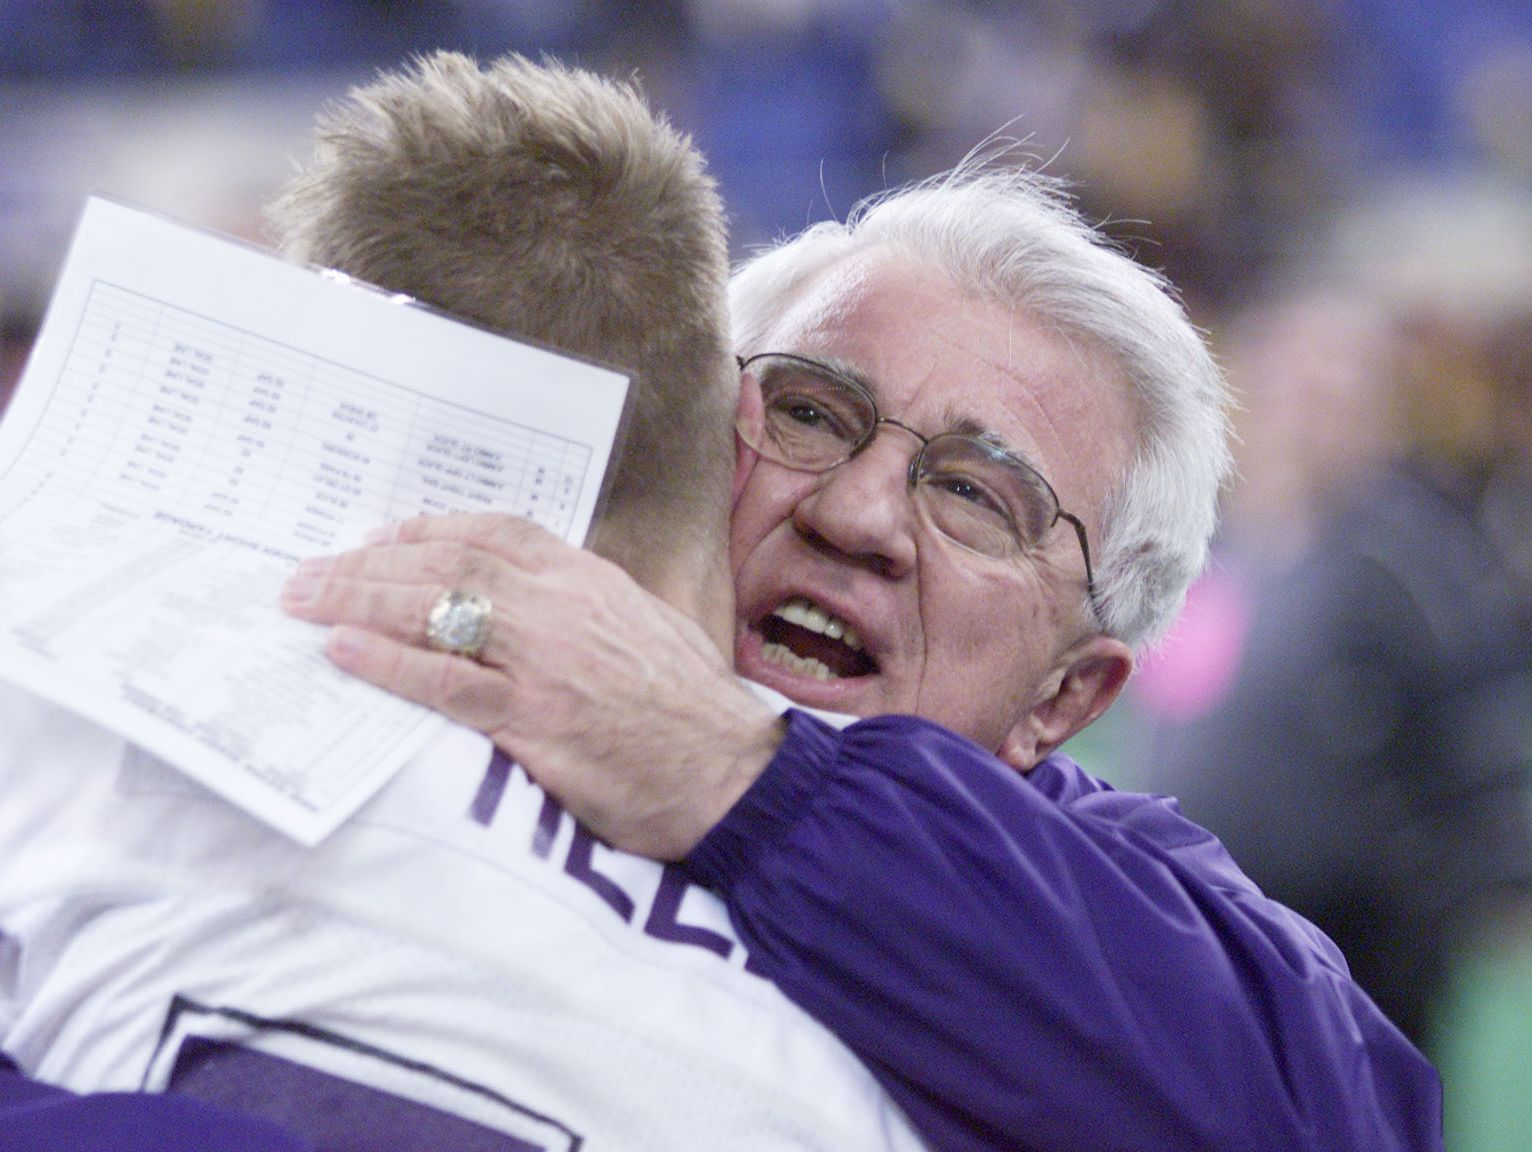 5_class5af.#78112-Ben Davis head coach Dick Dullaghan celebrates his seventh state championship with player Brian Meeks Saturday at the RCA Dome. The Giants defeated Ft. Wayne Snyder 31-7.WITH STORY(STEVE HEALEY/STAFF PHOTO)